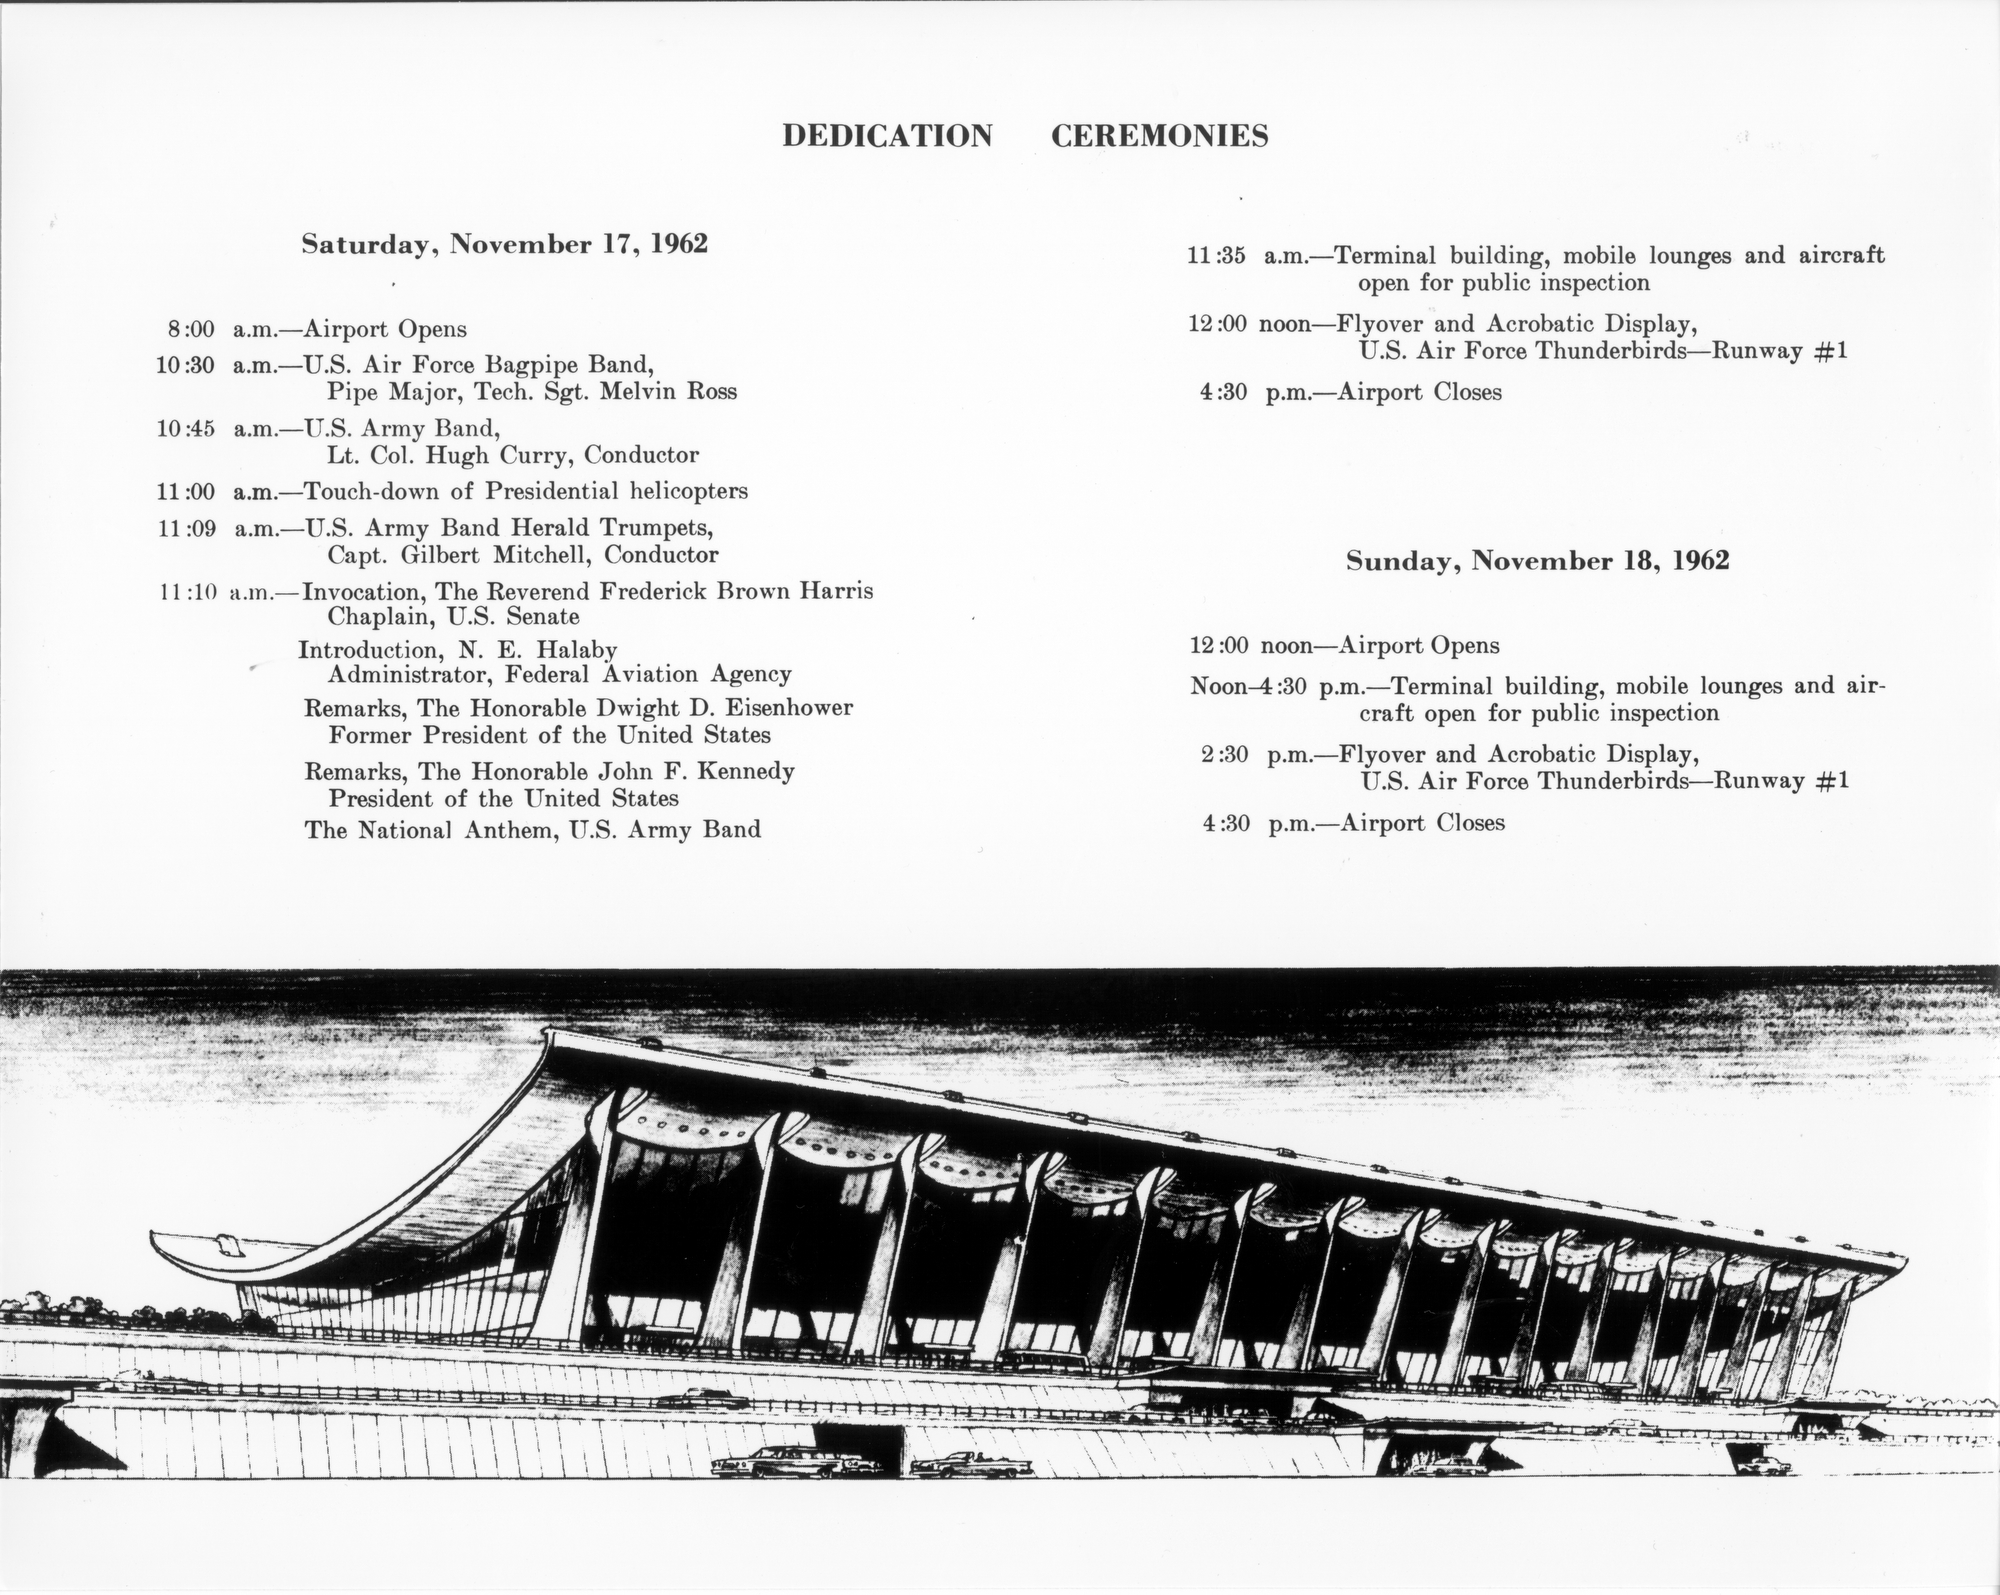 A copy of the program from the grand opening of the airport on November 17, 1962.